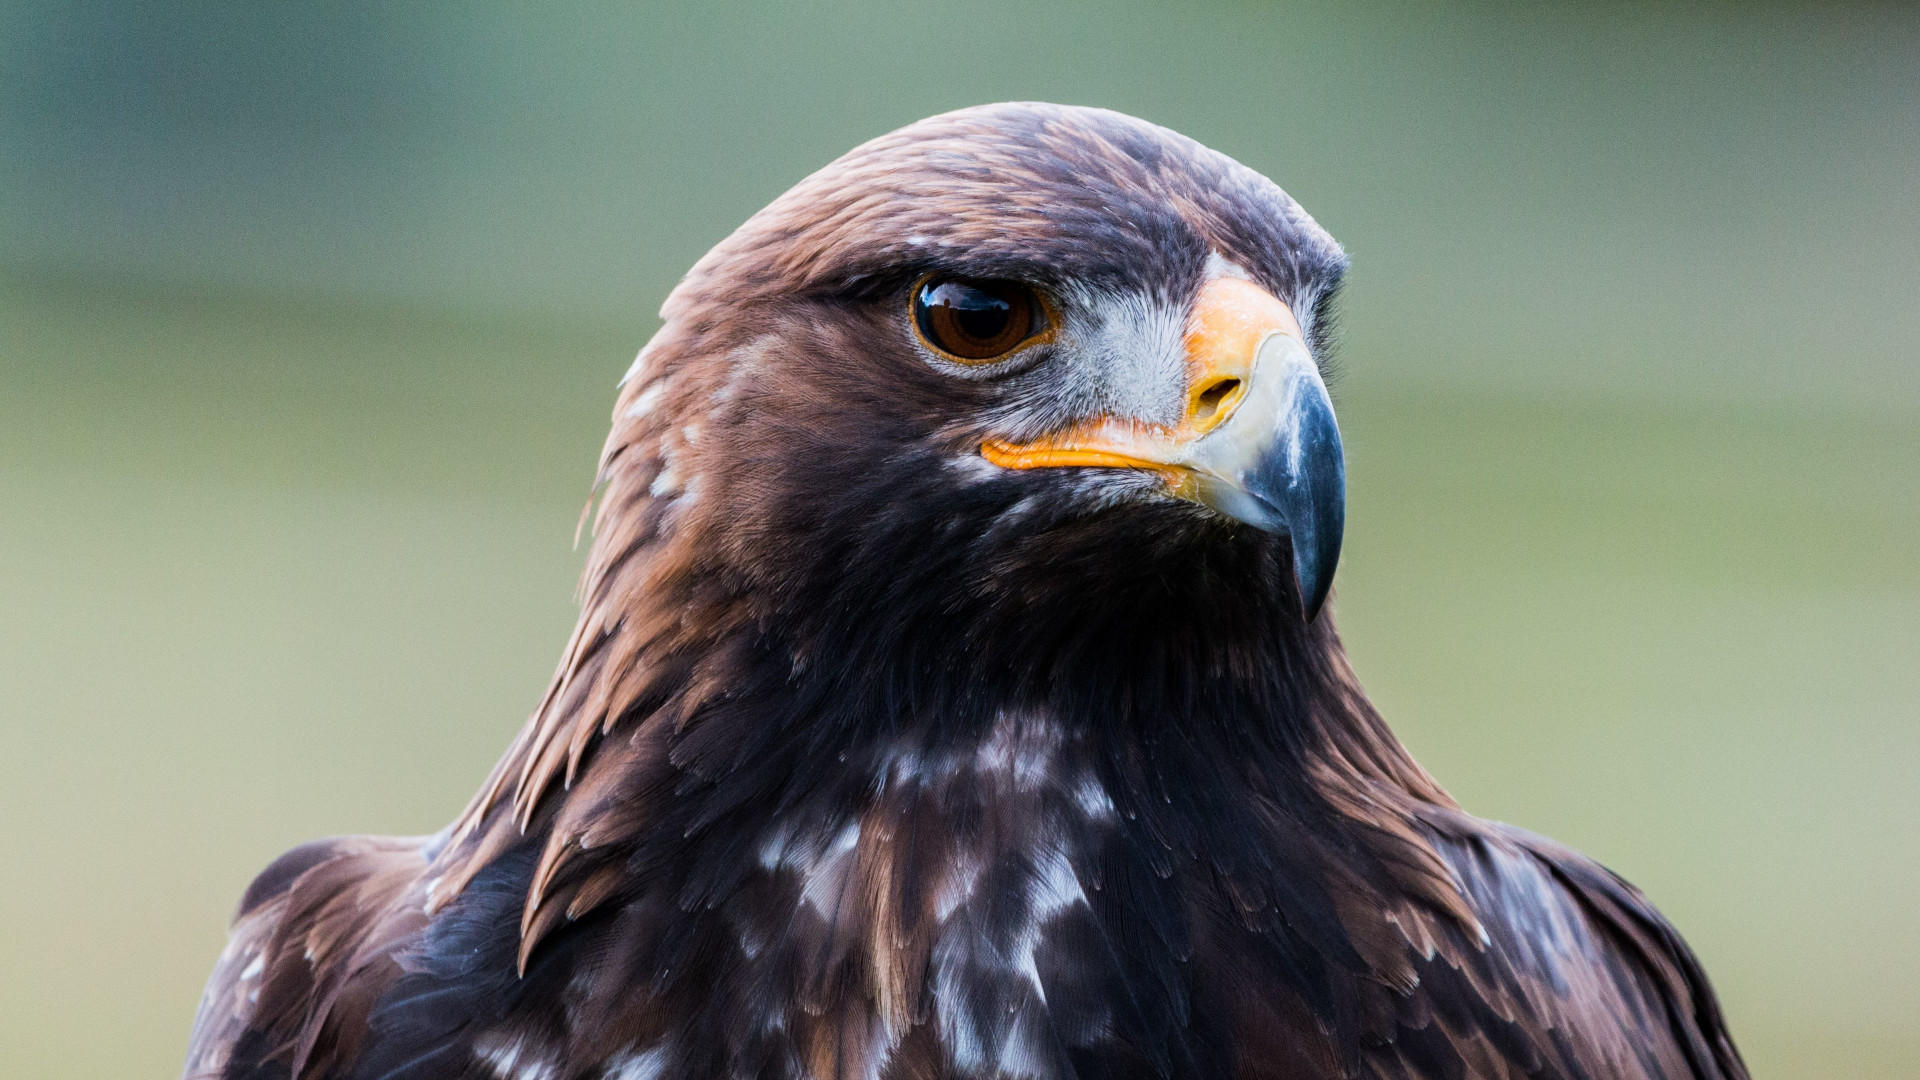 Golden eagle portrait wallpaper 1920x1080